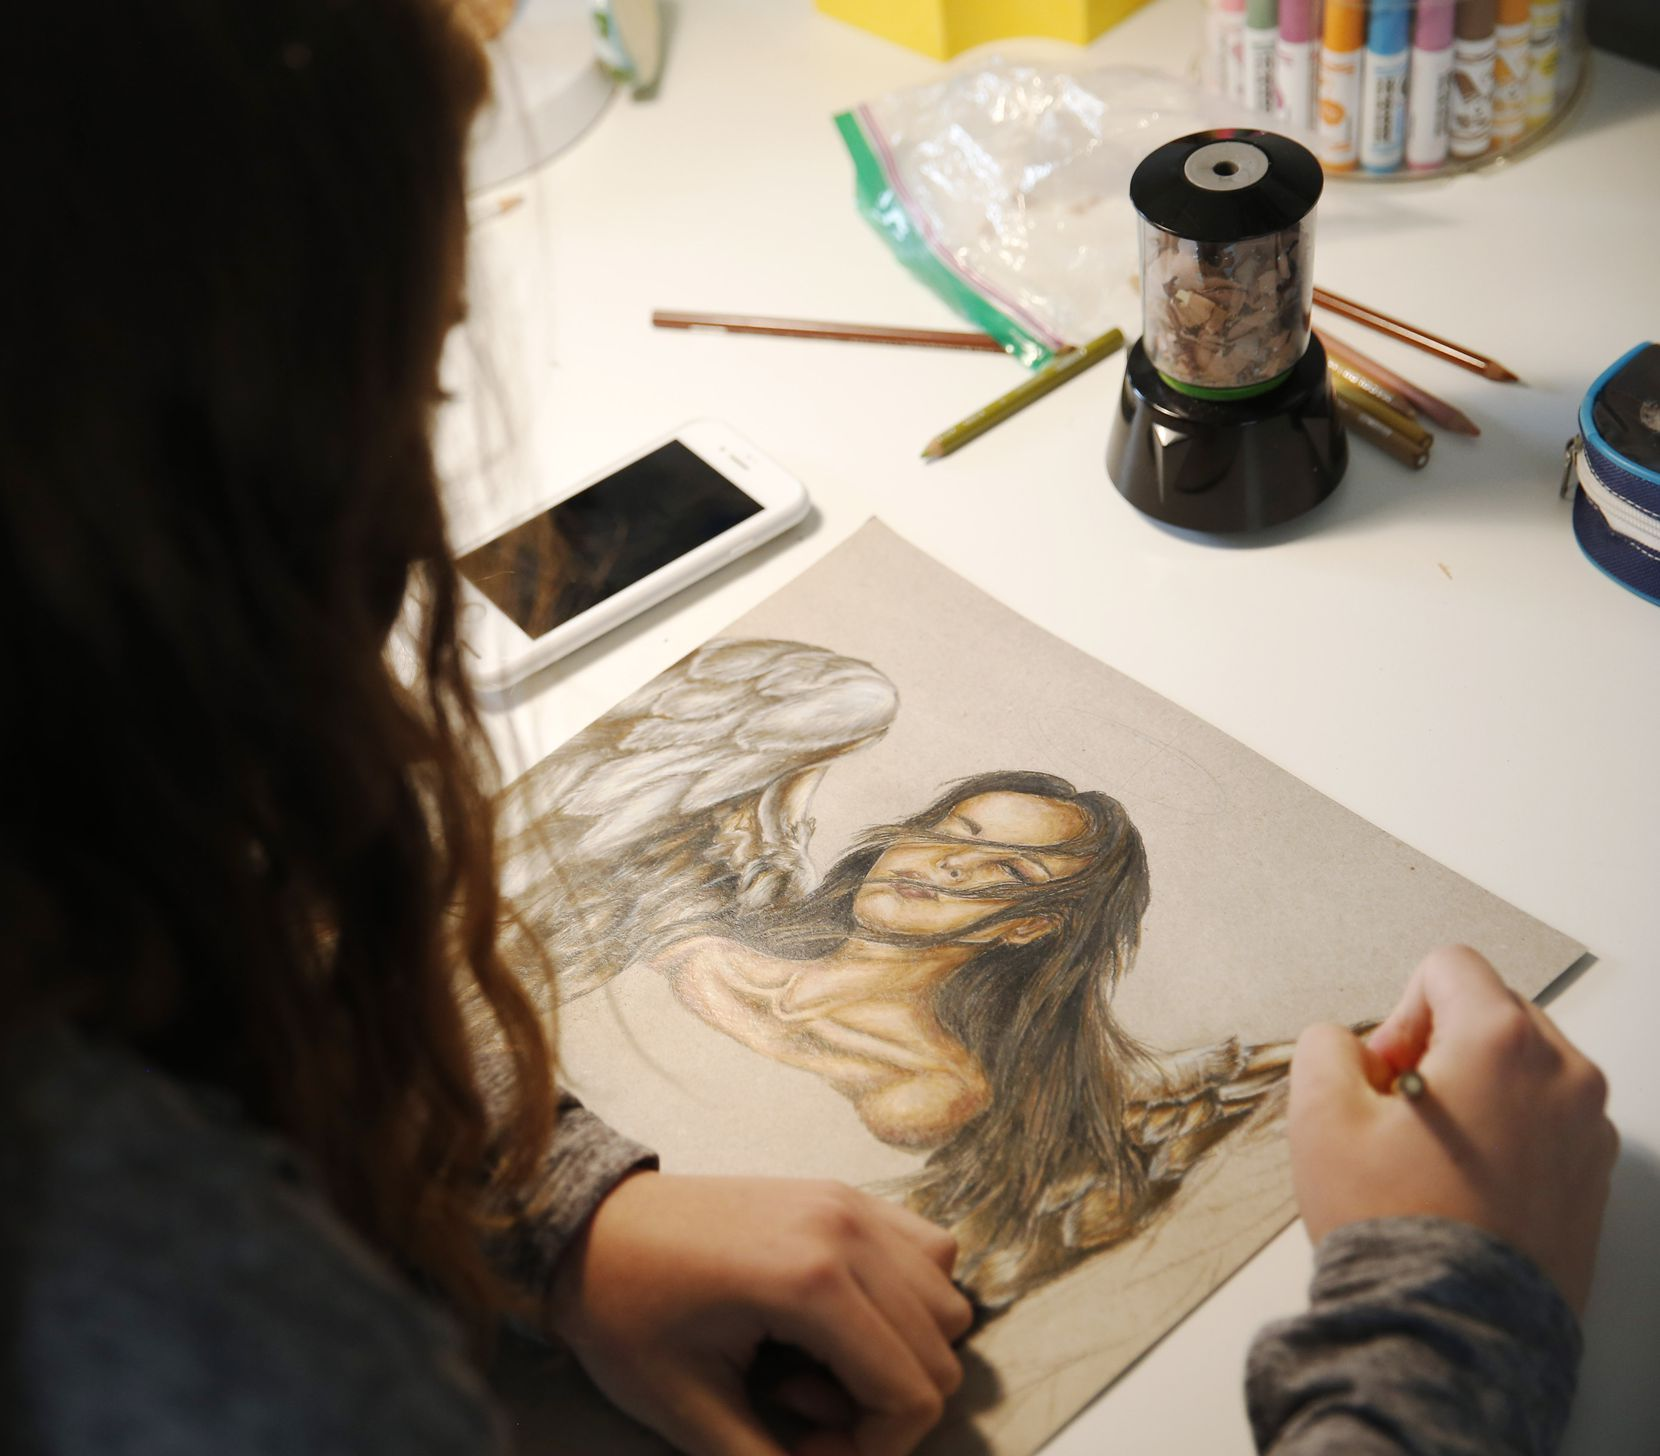 Lilly Heit, 16, works on a project for her AP art class at her Frisco home. Her mother, Jamie, said the coronavirus pandemic almost certainly will lead to the cancellation of trip to San Marcos that Lilly won in a statewide art competition.